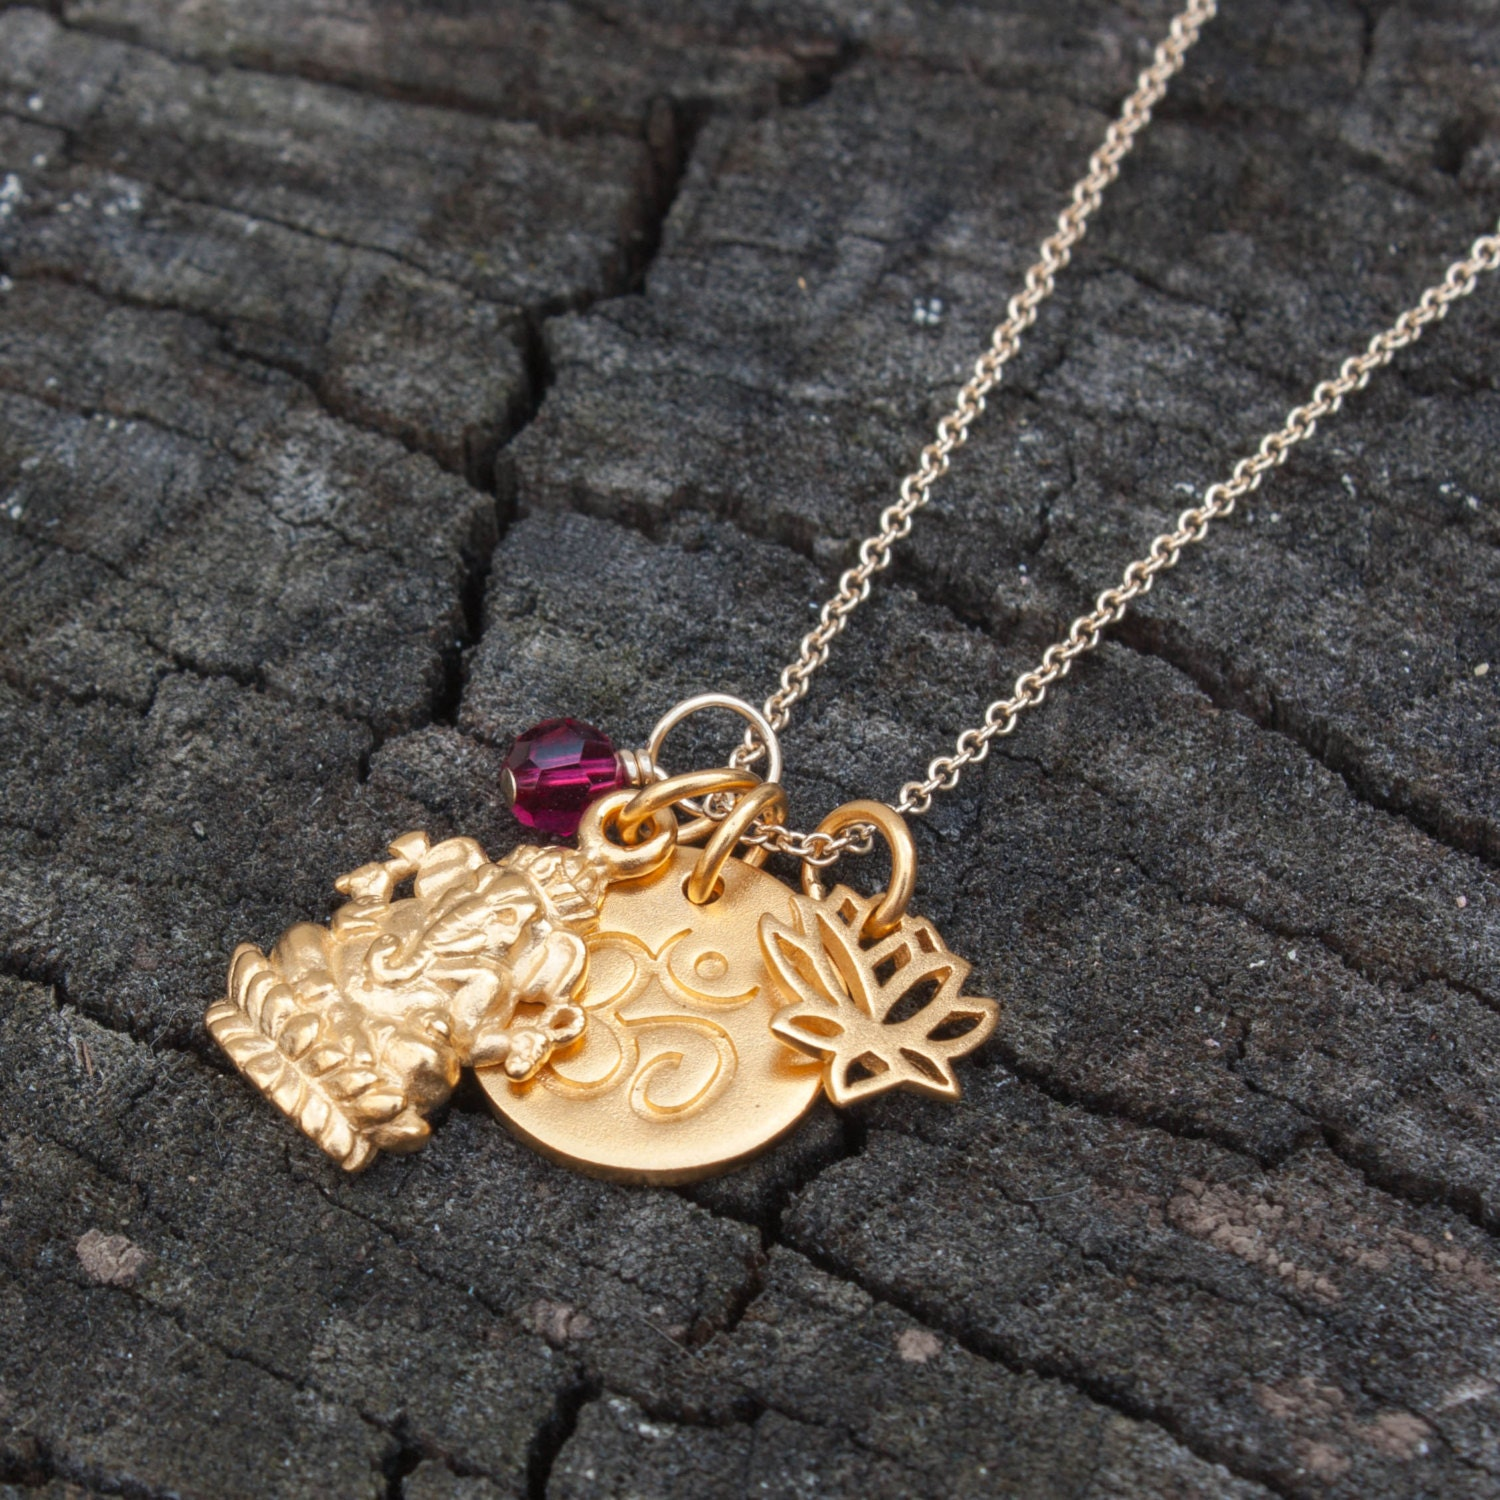 gold ganesha charm necklace yoga jewelry personalized. Black Bedroom Furniture Sets. Home Design Ideas